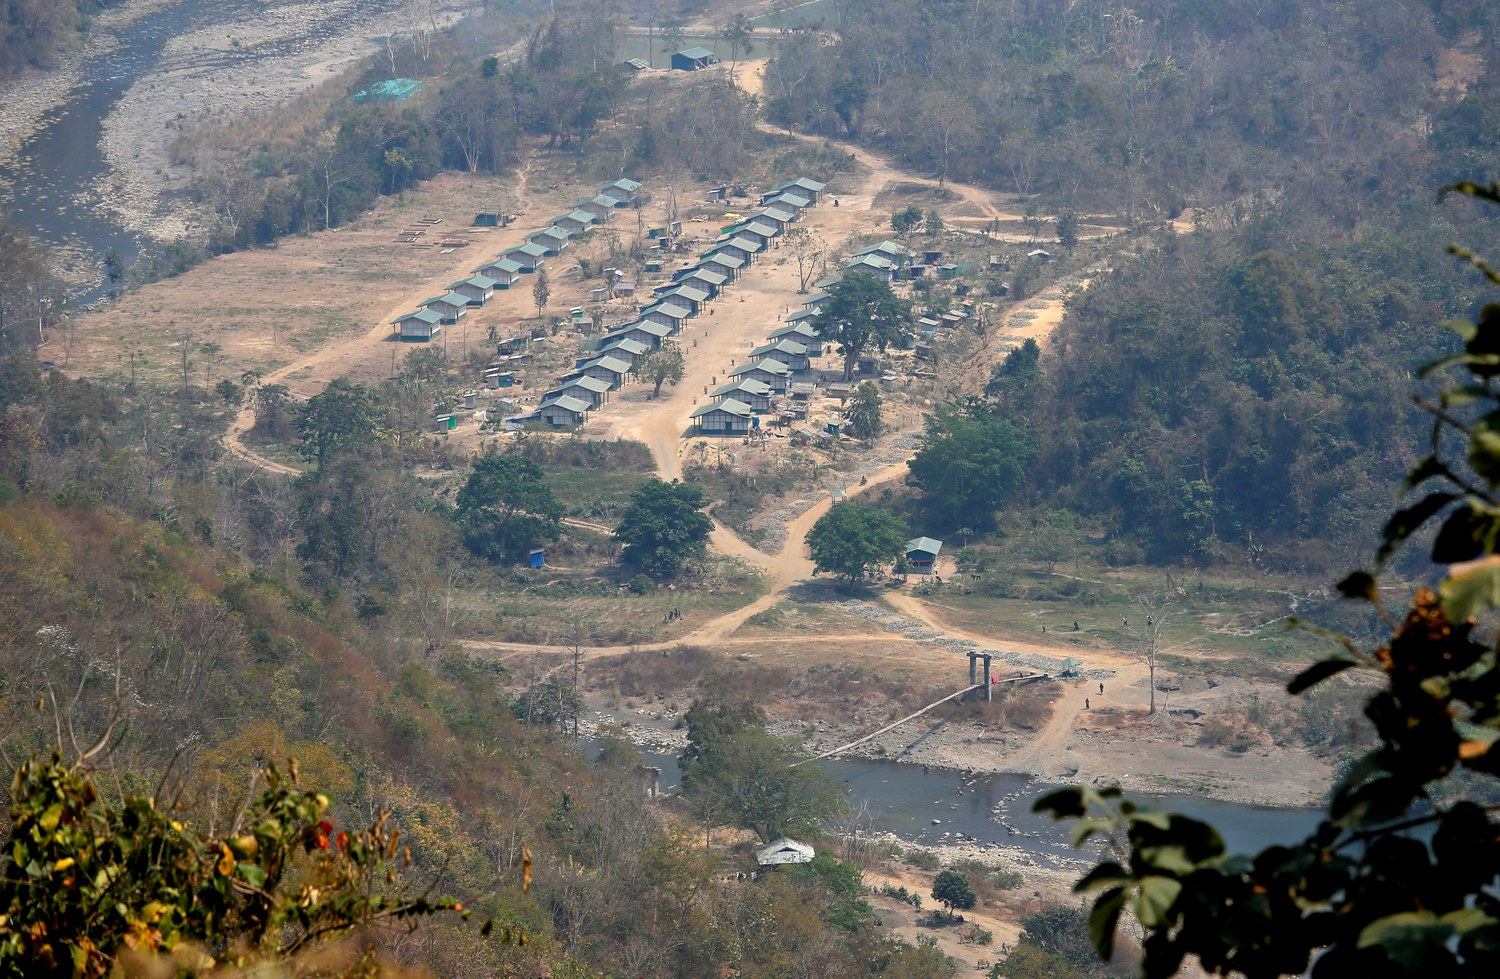 Chin State Coalition Overruns Myanmar Military Outpost, Killing 12 Soldiers